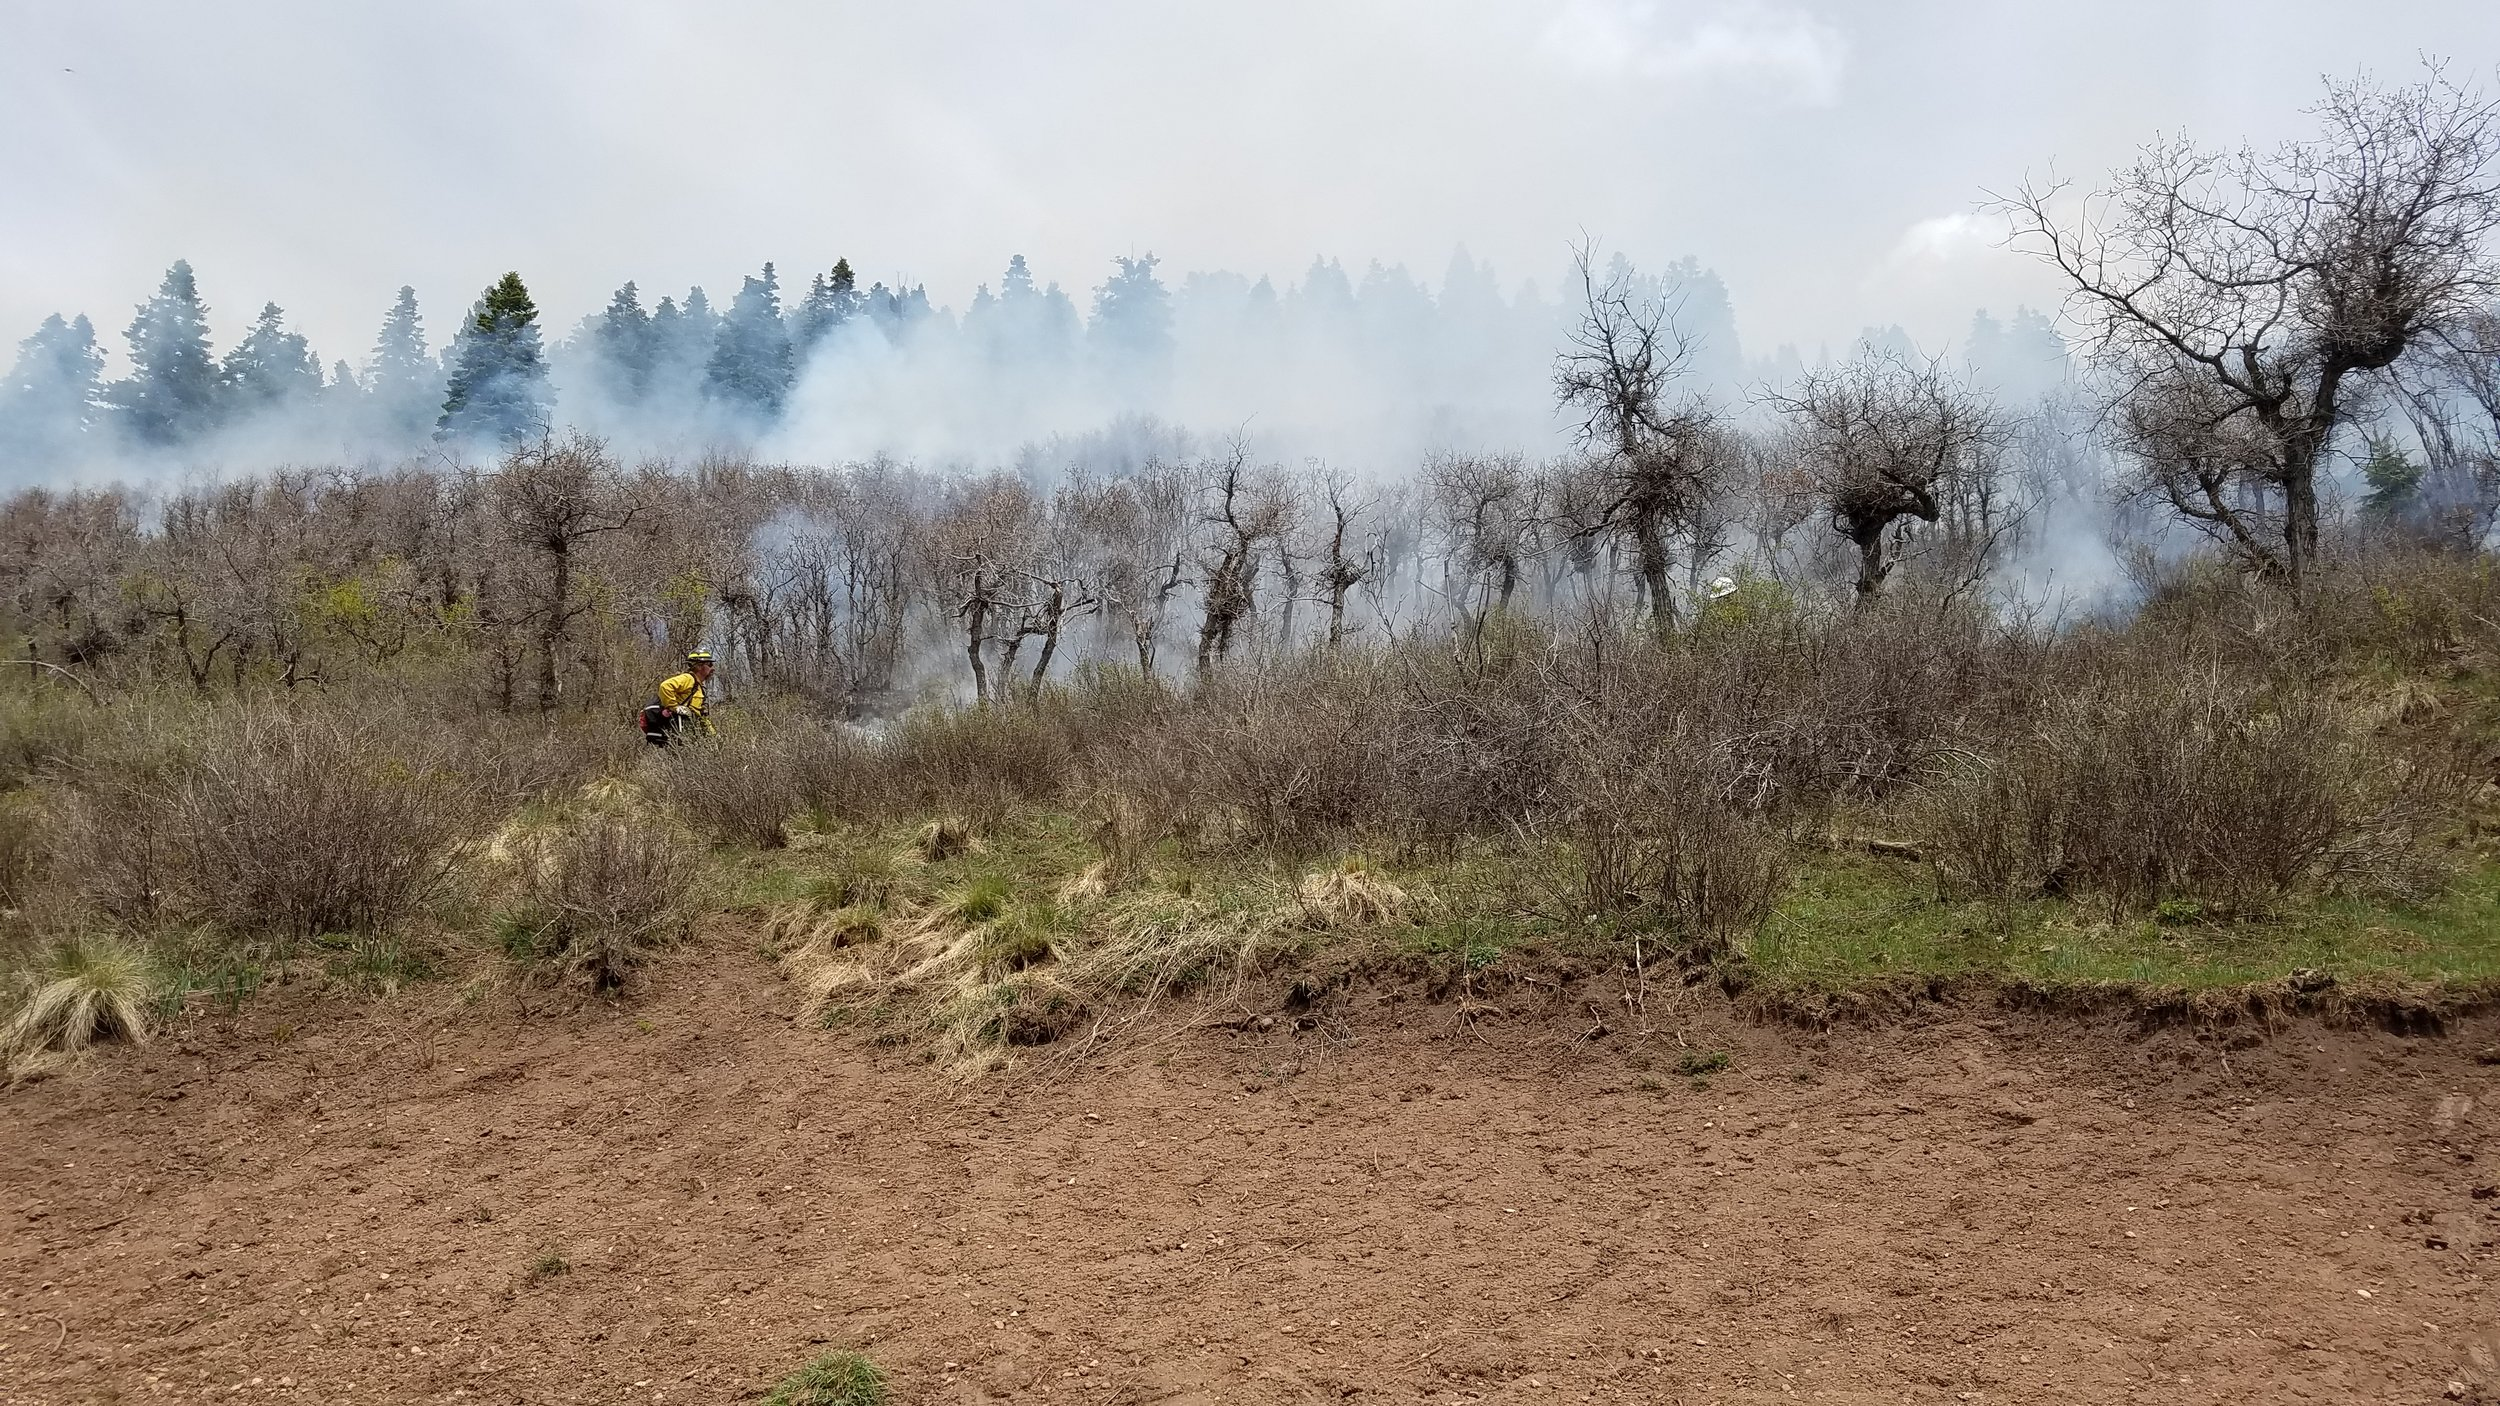 Low intensity prescribed fire for habitat improvement on private land near Chama, NM.